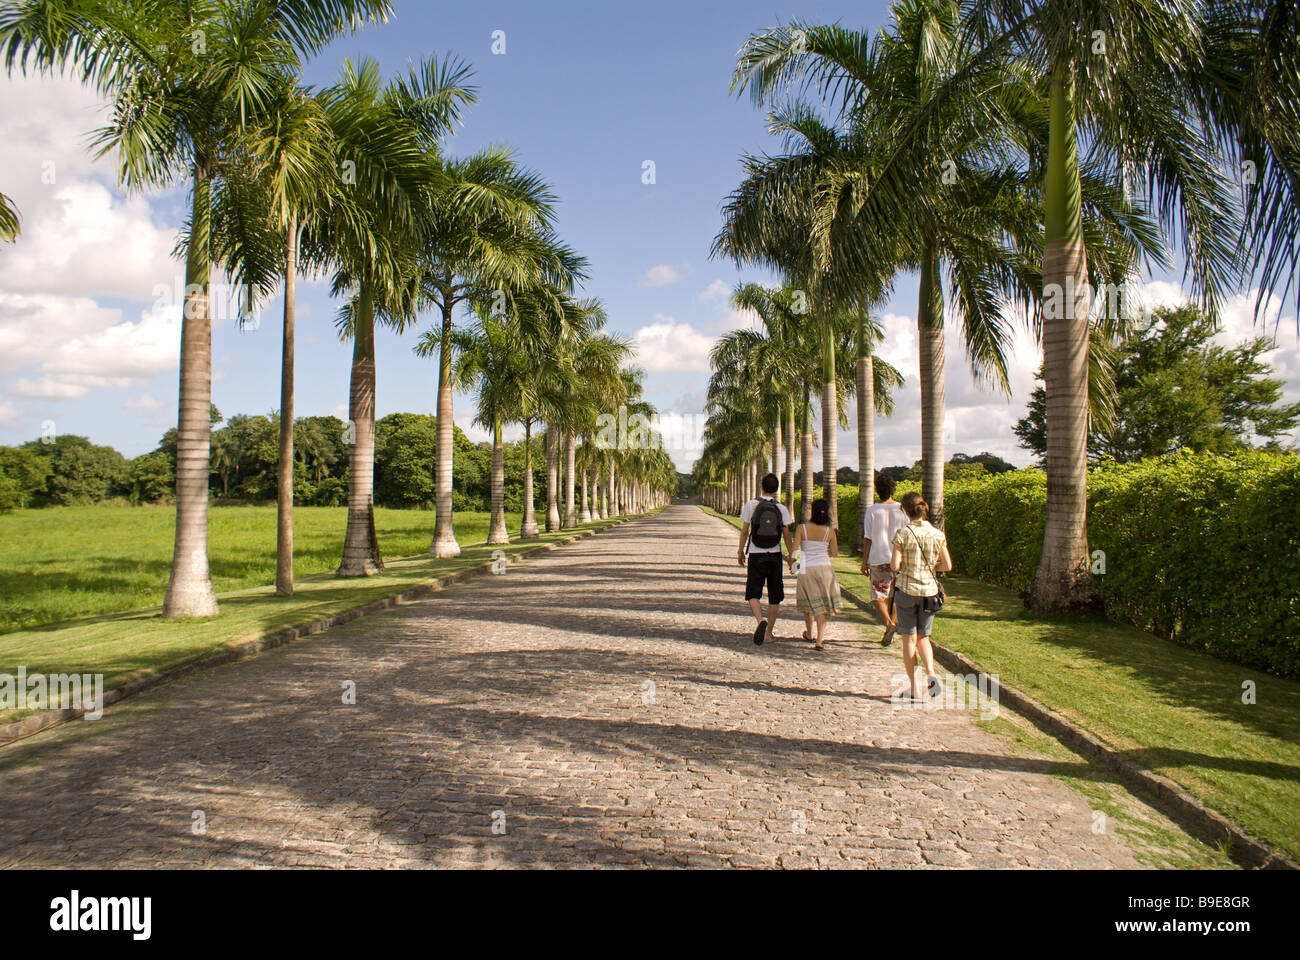 Road to Brennand Institute. Recife, Pernambuco, Brazil. - Stock Image